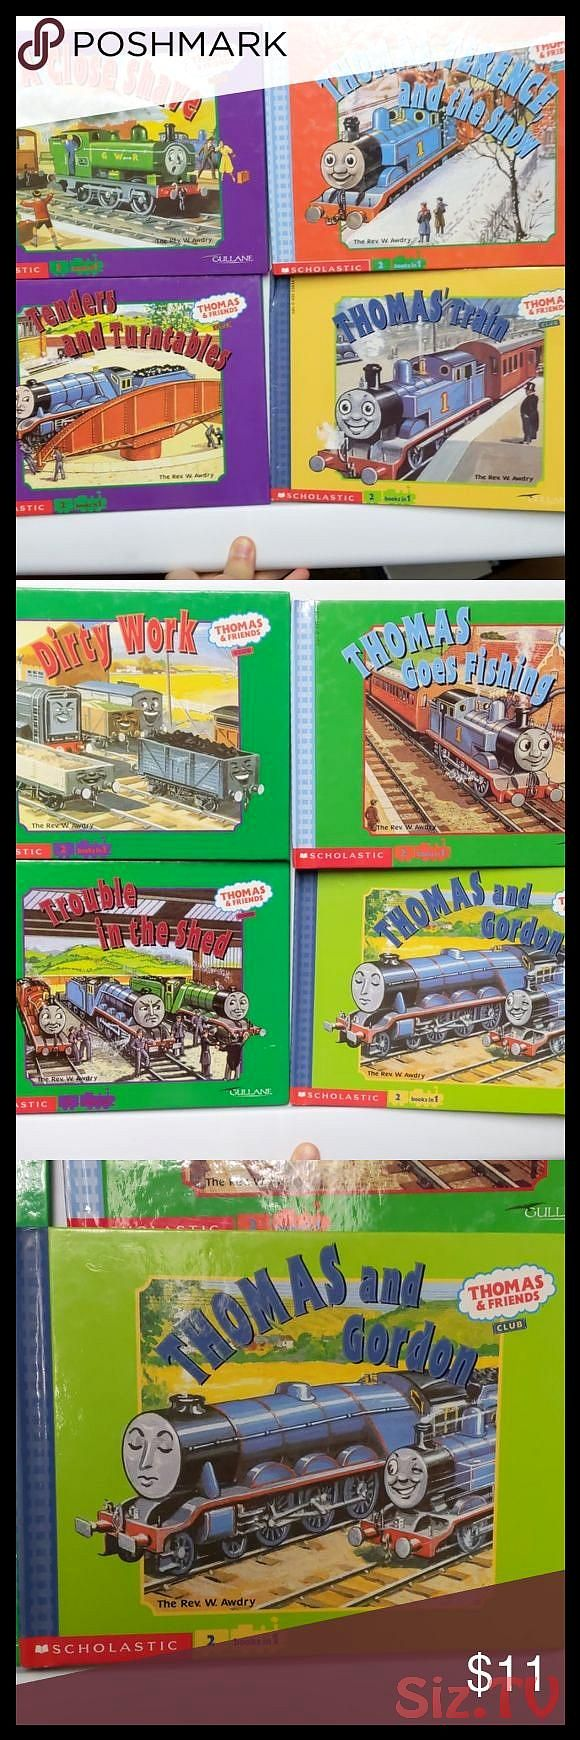 Thomas 038 Friends lot of 4 books Thomas the train books Lot of four books with each book containing two stories for a total of 8 stories in the lot TThomas 038 Friends l...